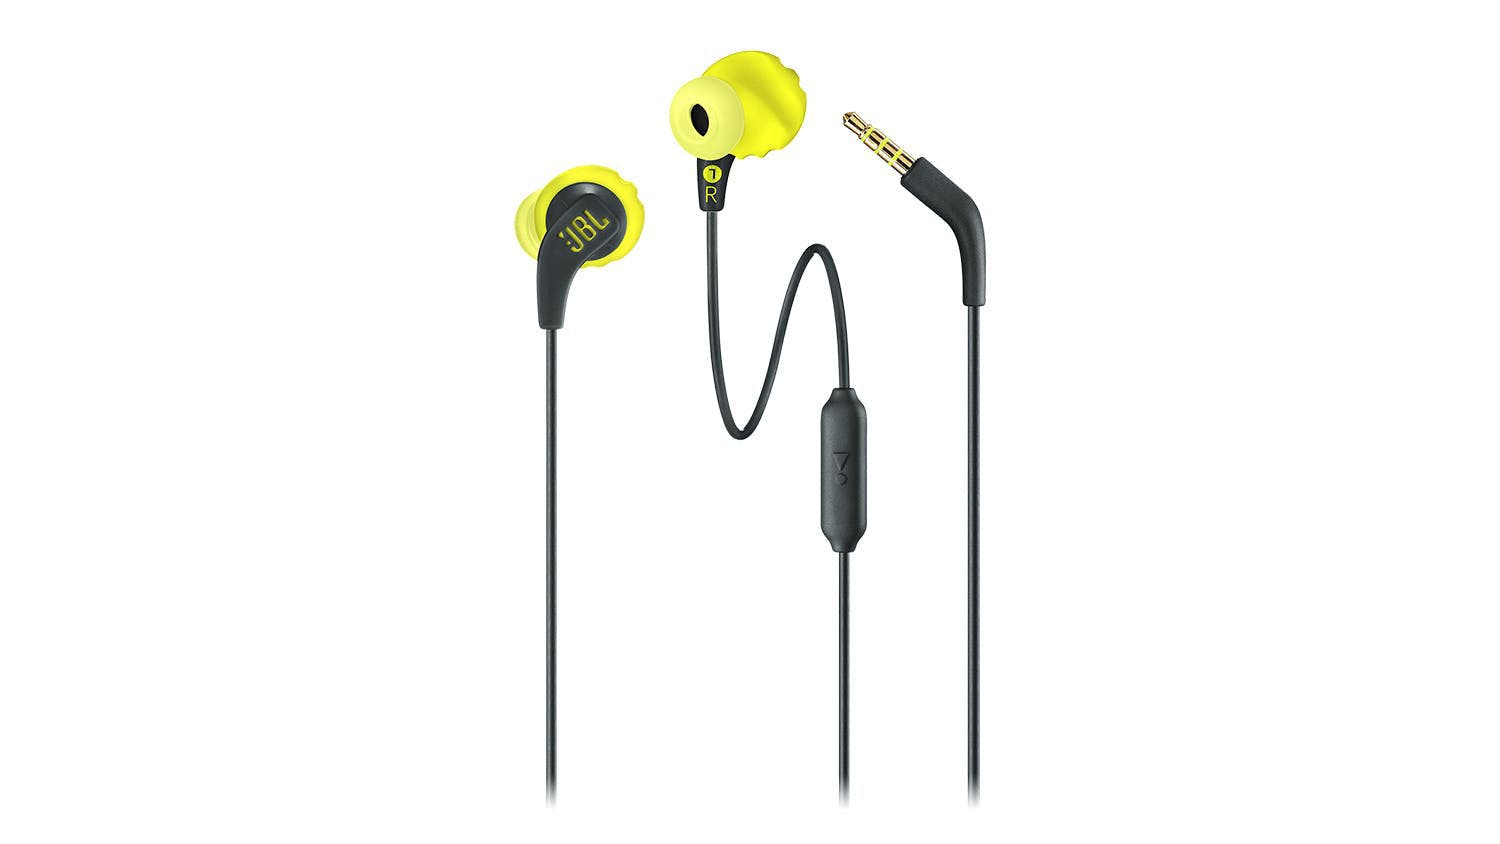 JBL Endurance Run In-Ear Headphones - Yellow